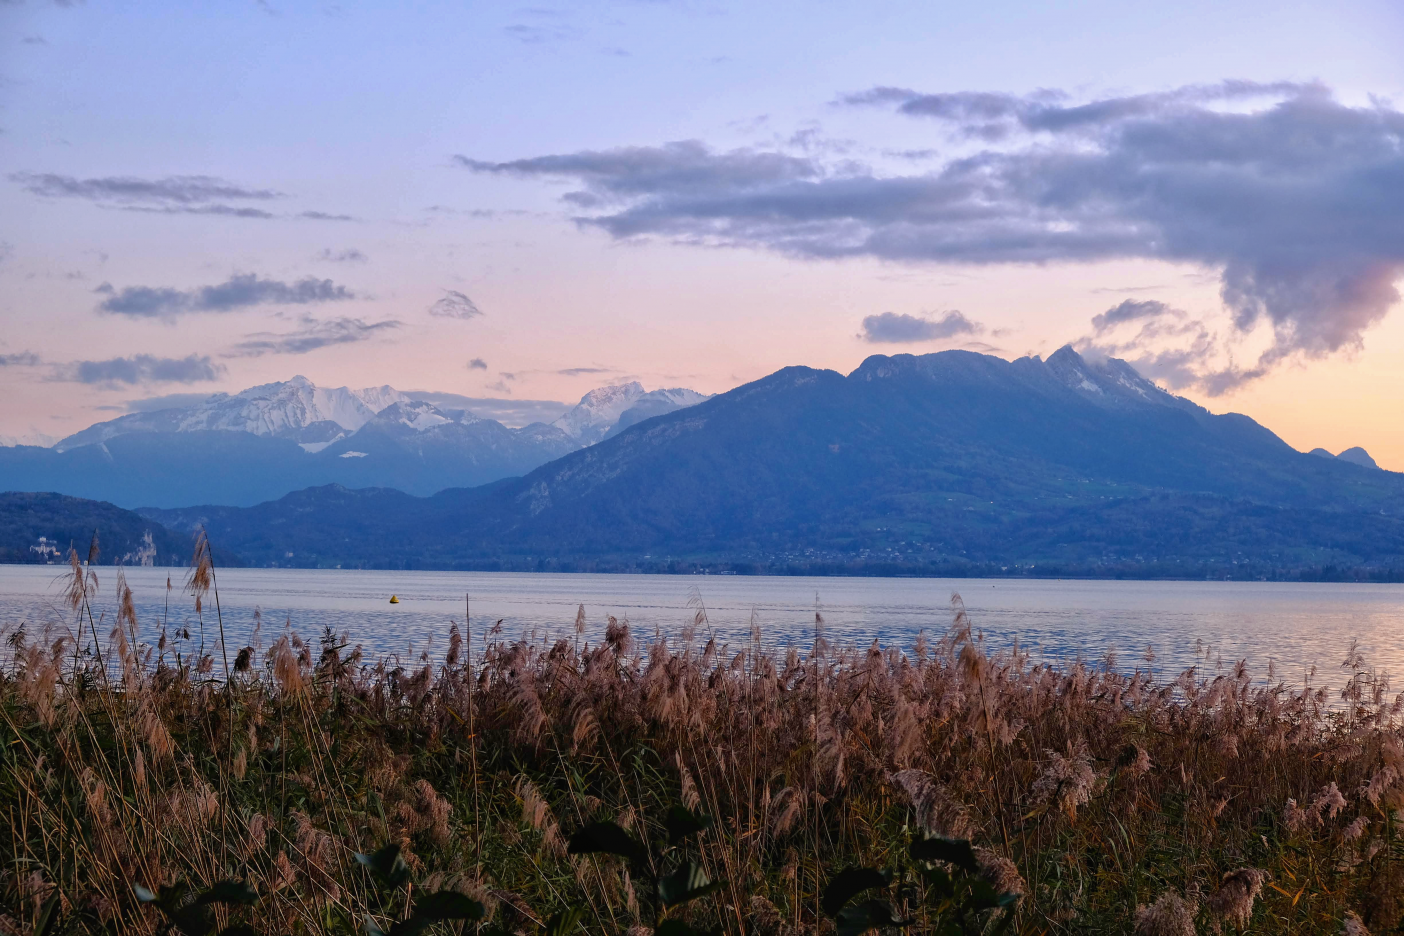 Sunset view of lake and mountains